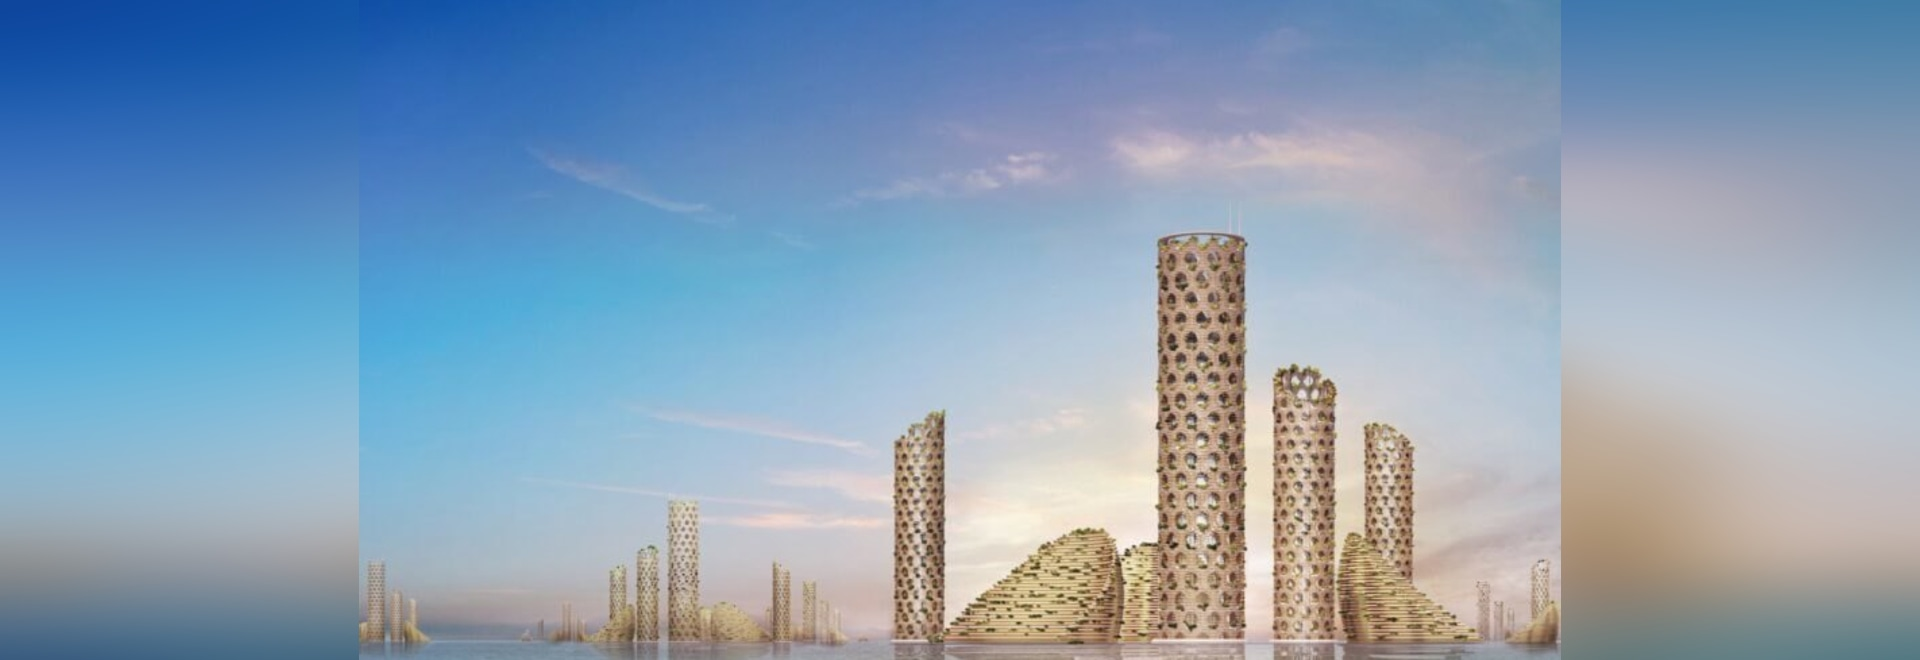 Luca Curci Architects proposes a self-sustainable Vertical City of the future